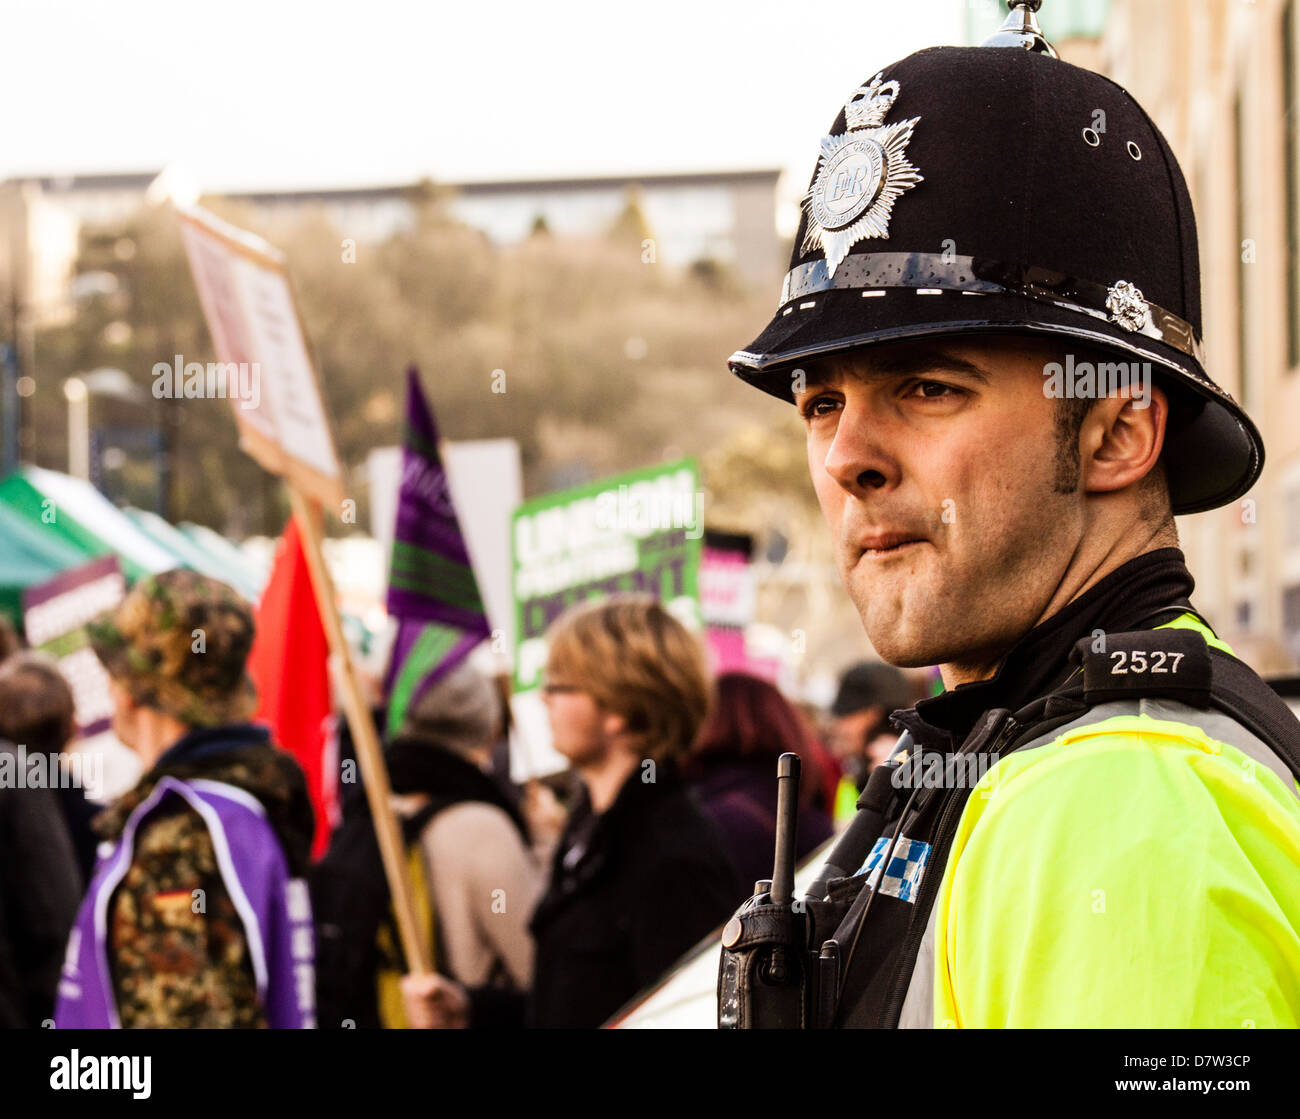 People protest against the coalition Government cuts as a policeman looks on. - Stock Image